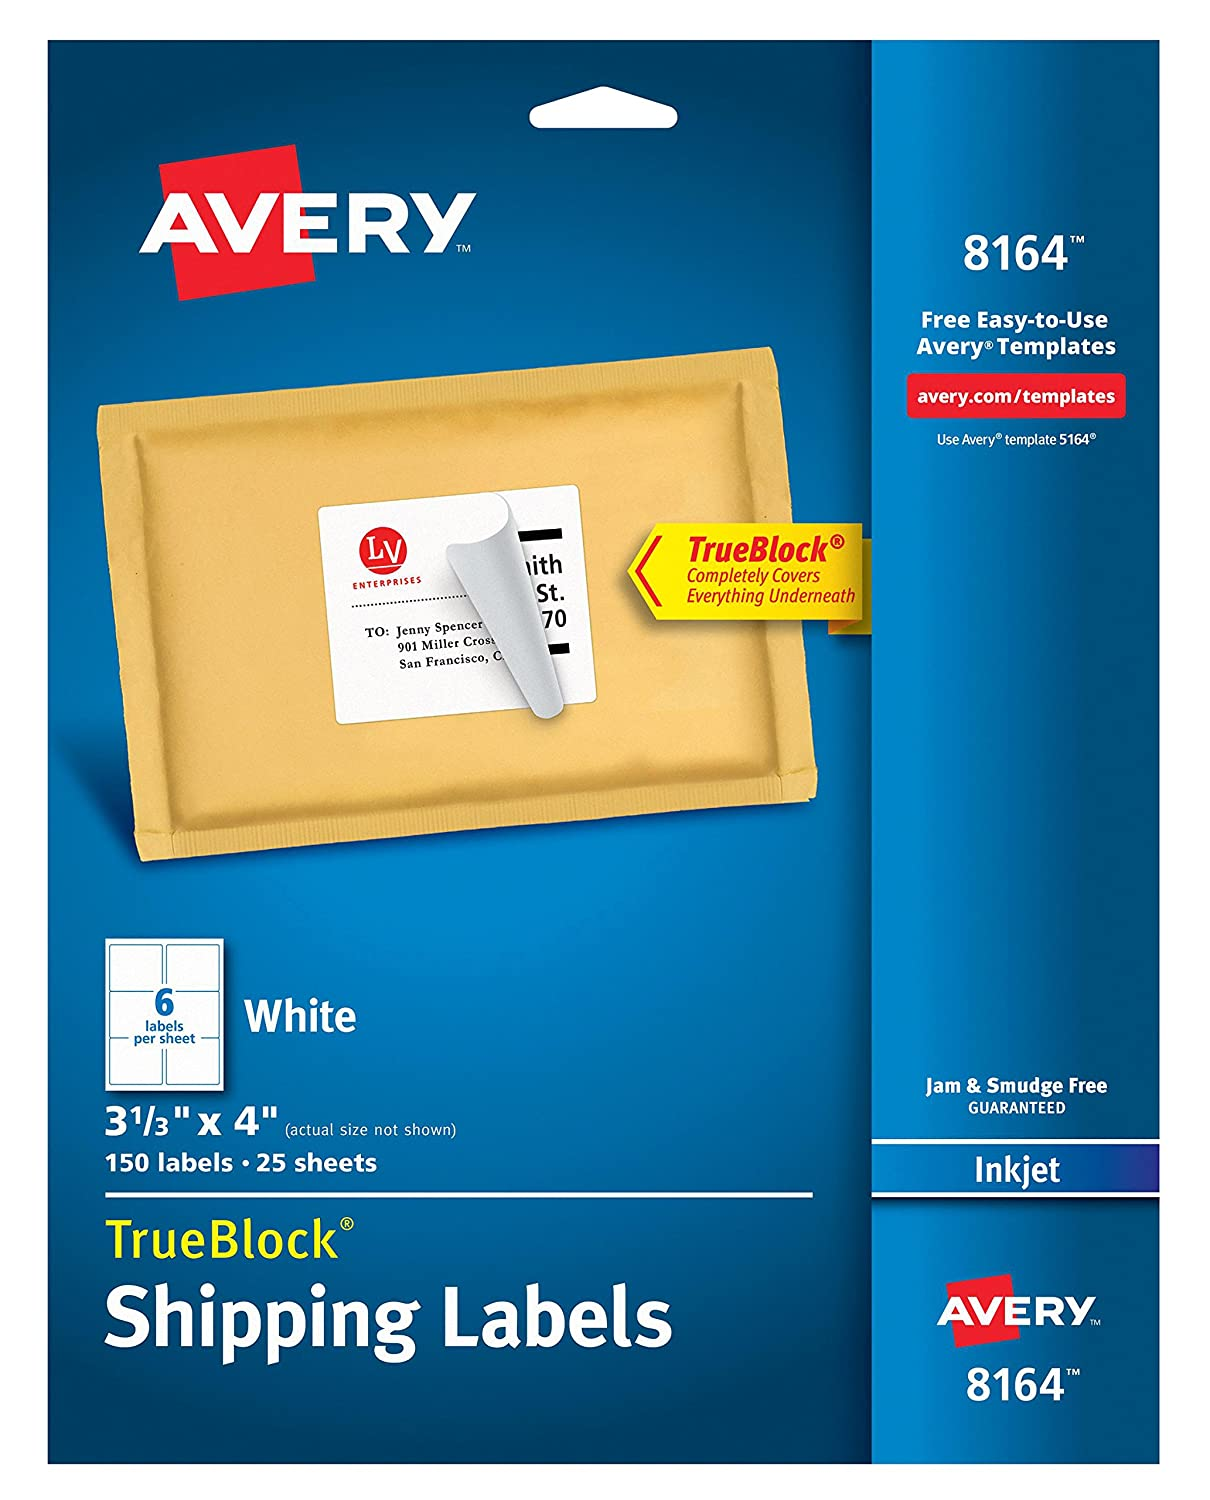 Avery Shipping Labels with TrueBlock Technology for Inkjet Printers 2 x 4, Pack of 250 (8163)